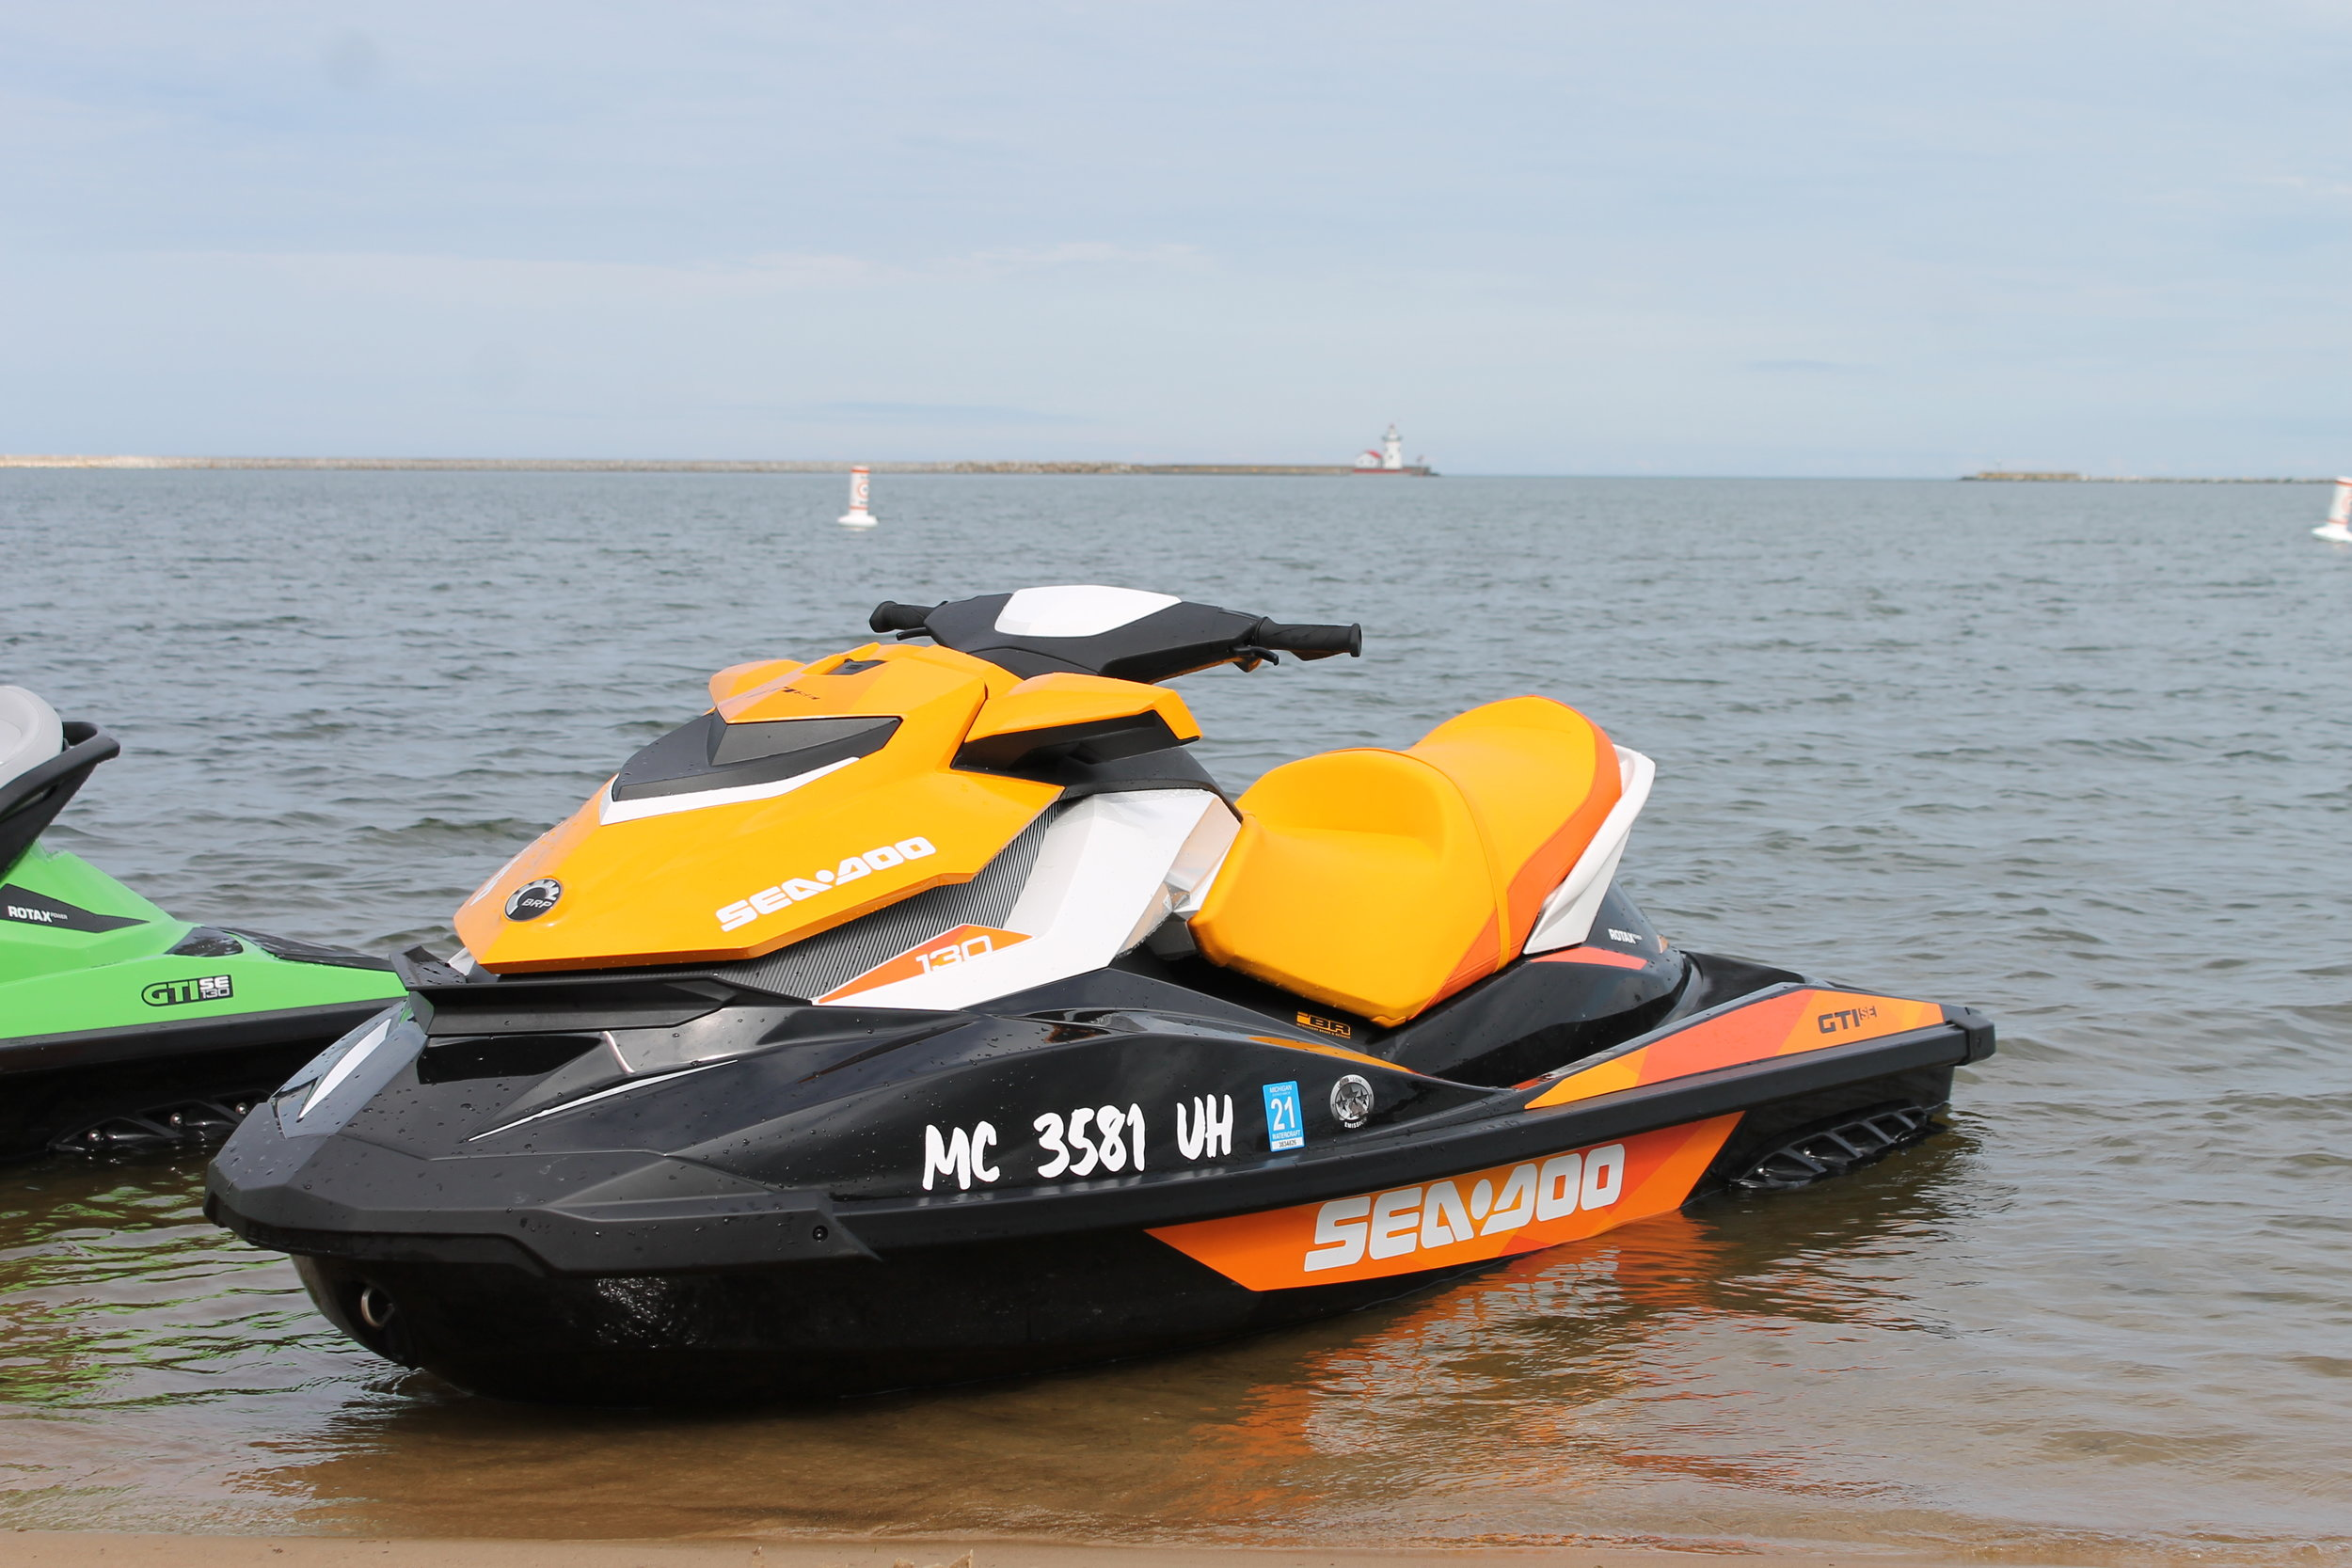 The Orange - 2018 SEA DOO GTI 130 SE3 cylinder, 4 stroke, electric start, automatic, reverse3 seats, 132.6 in x 48.5 in, 15 gallon gas tank capacityautomatic trim